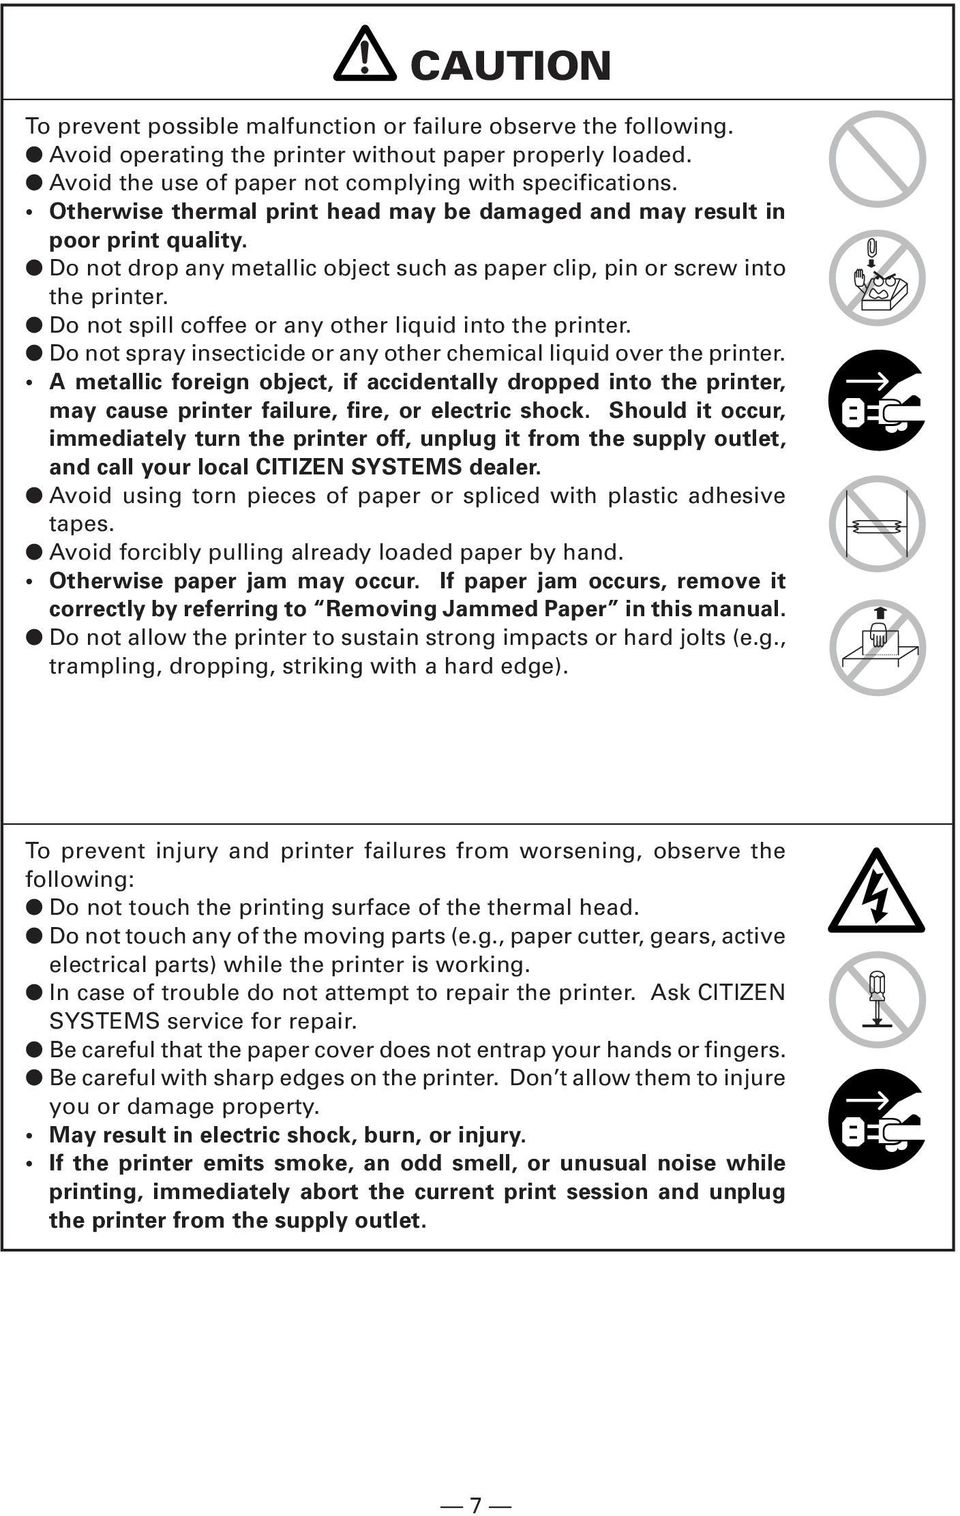 Do not spill coffee or any other liquid into the printer. Do not spray insecticide or any other chemical liquid over the printer.